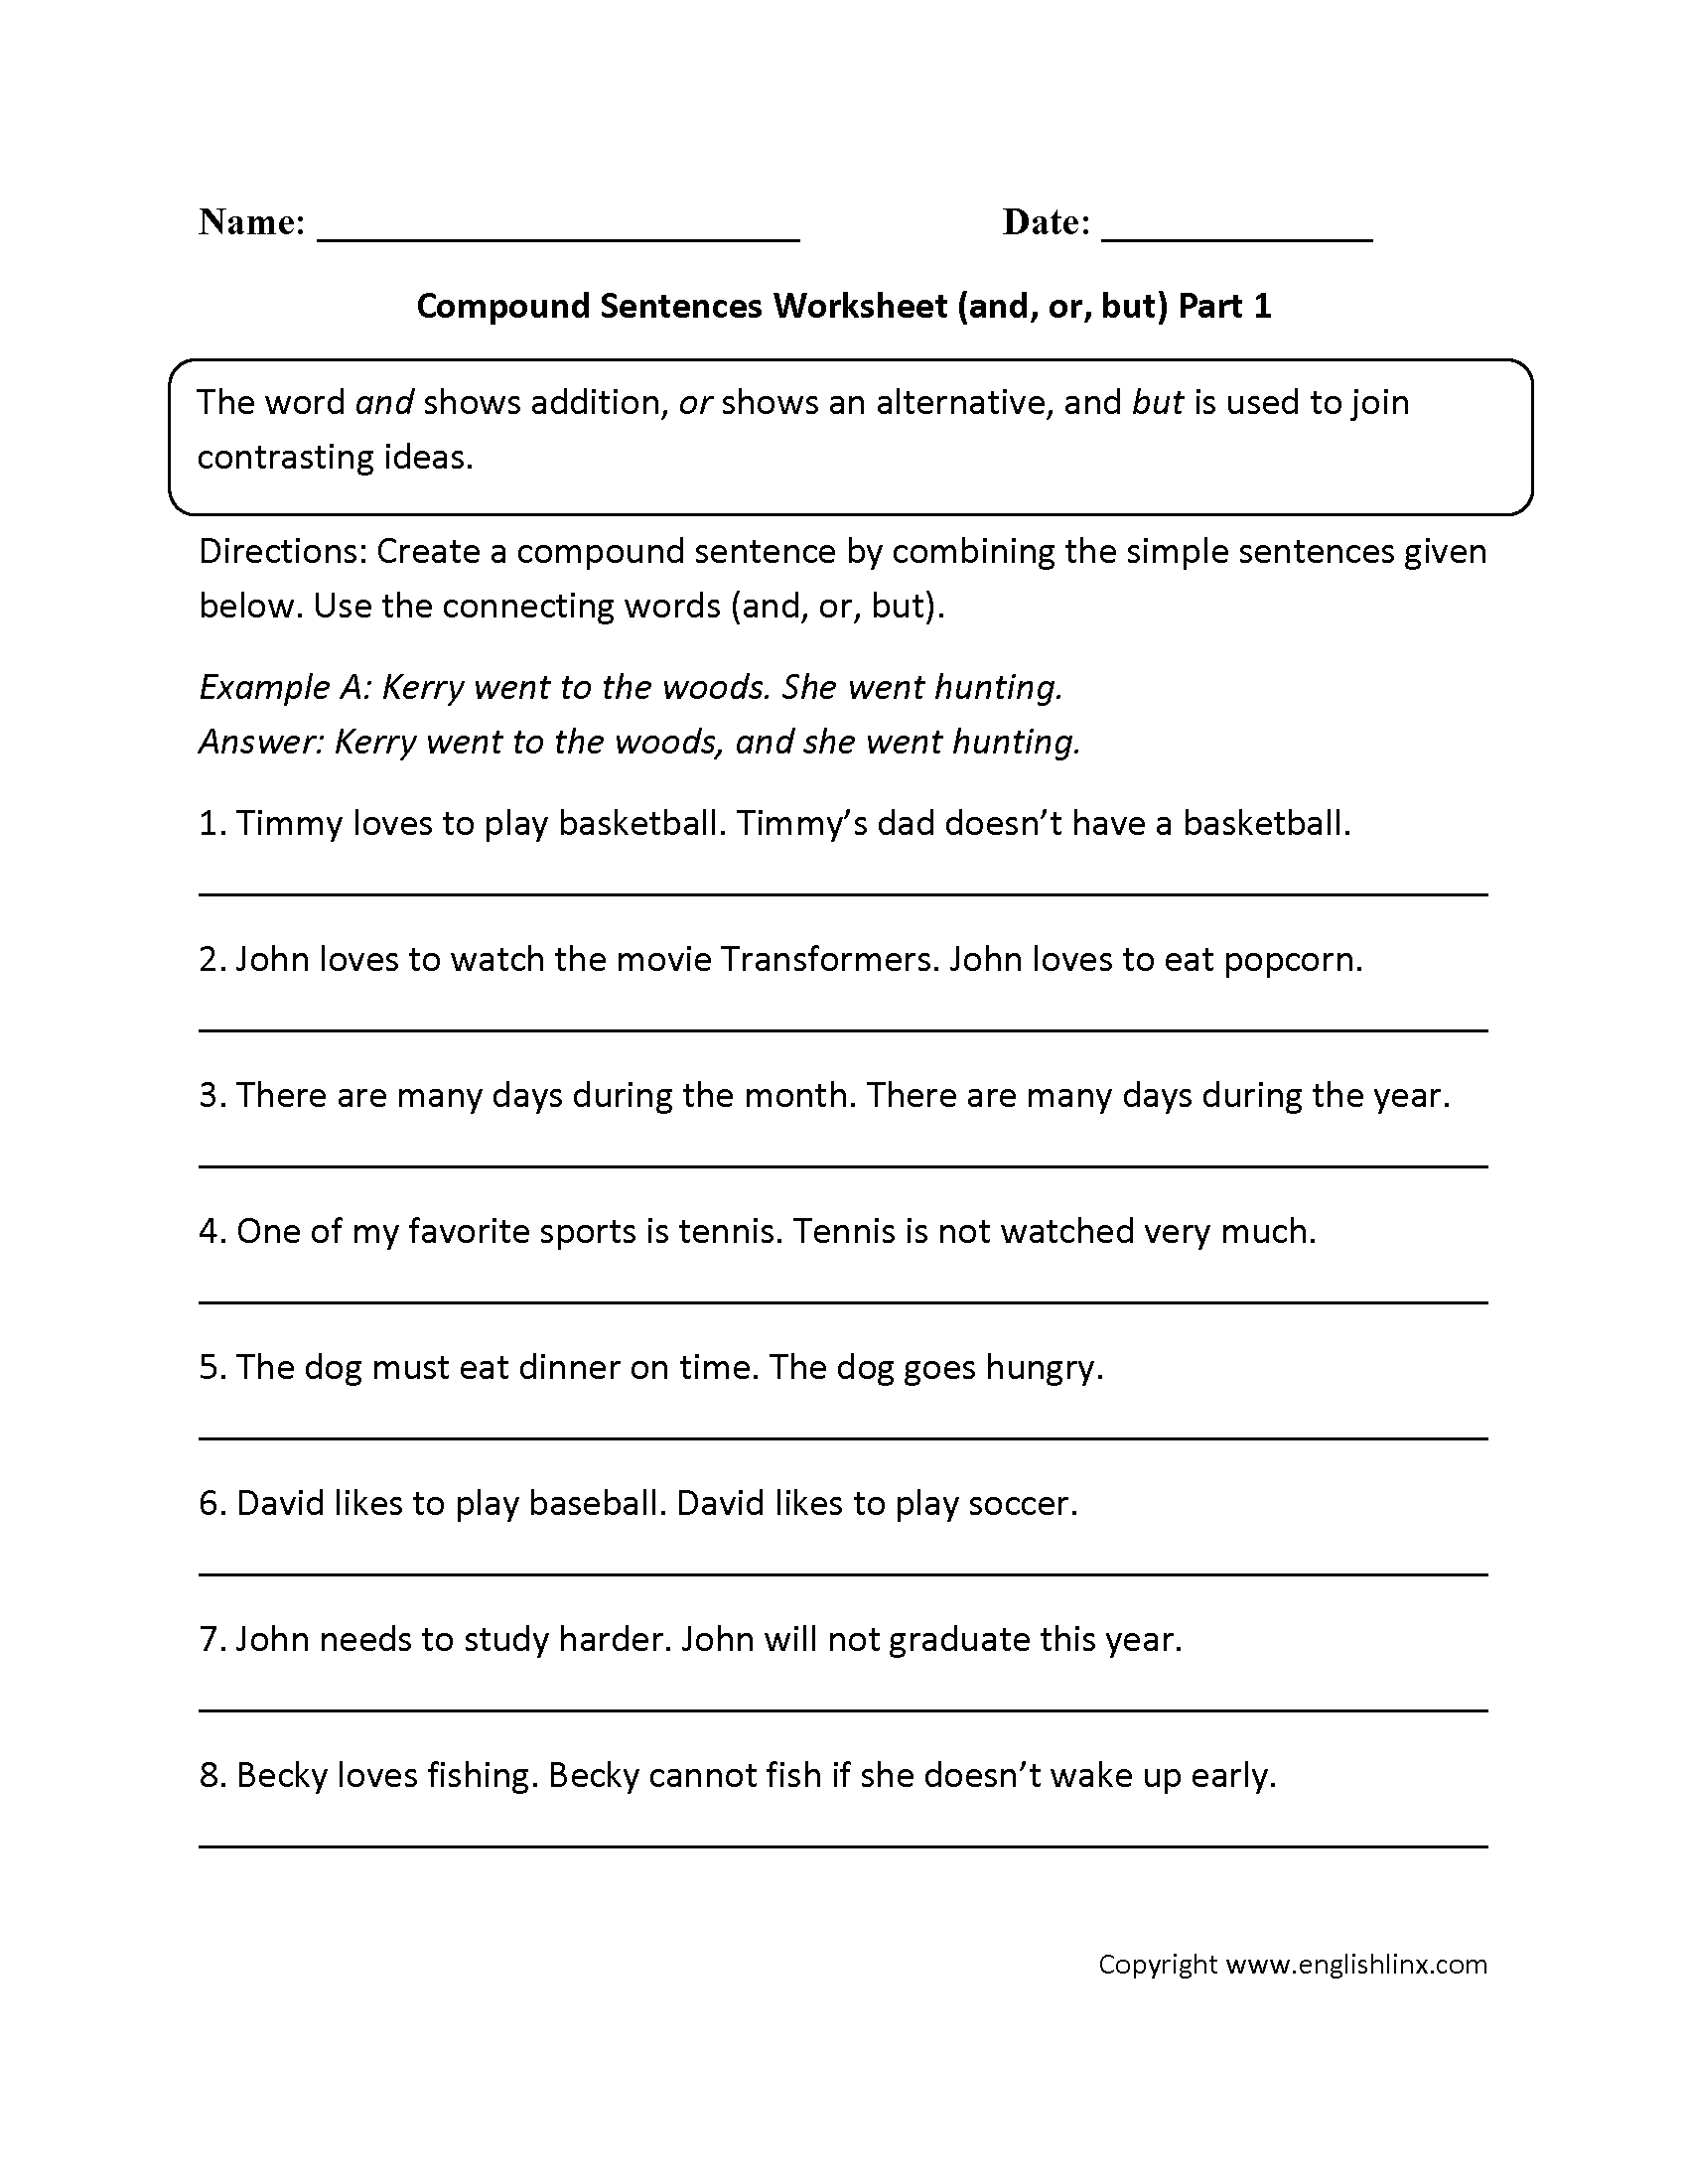 Sentences Worksheets | Compound Sentences Worksheets